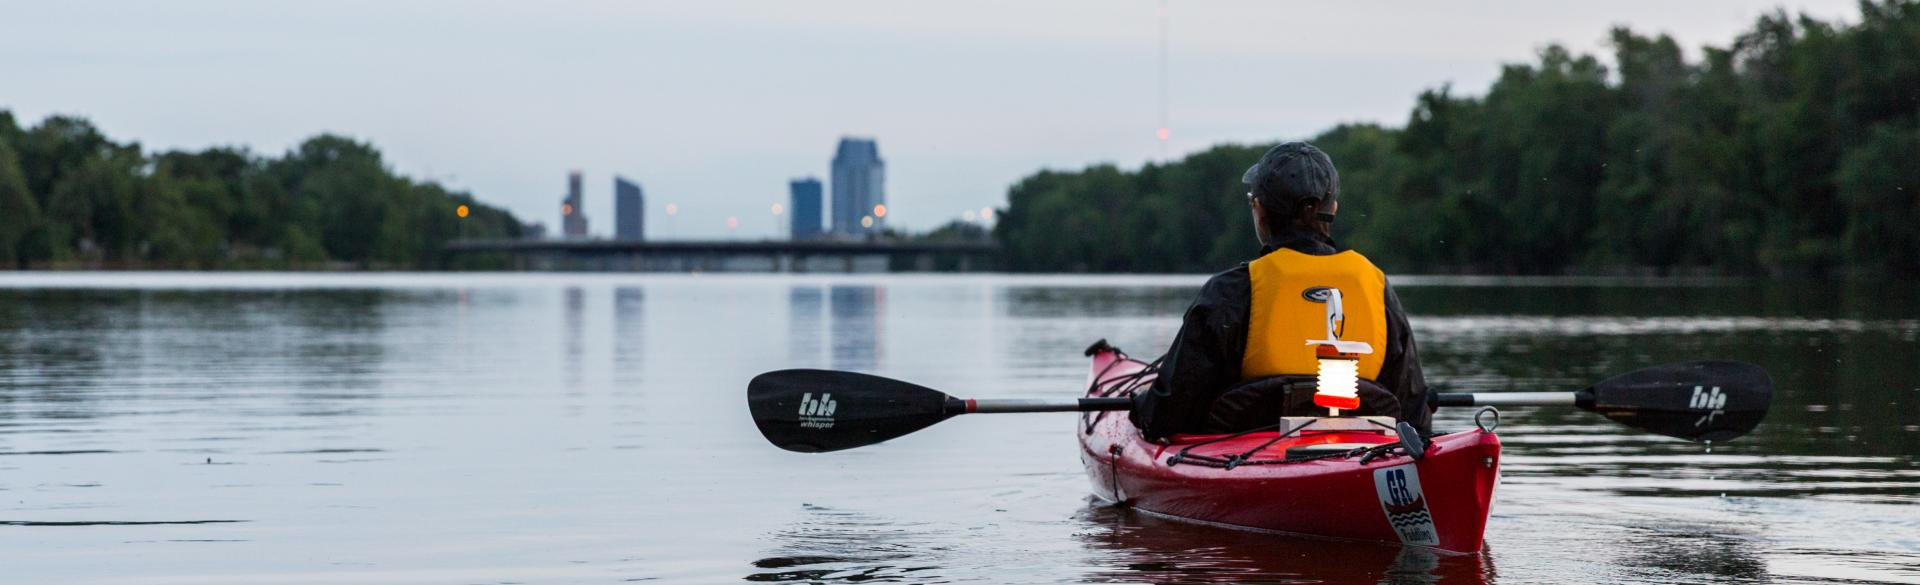 Grand Rapids Michigan | Paddleboarding, Canoeing & Kayaking